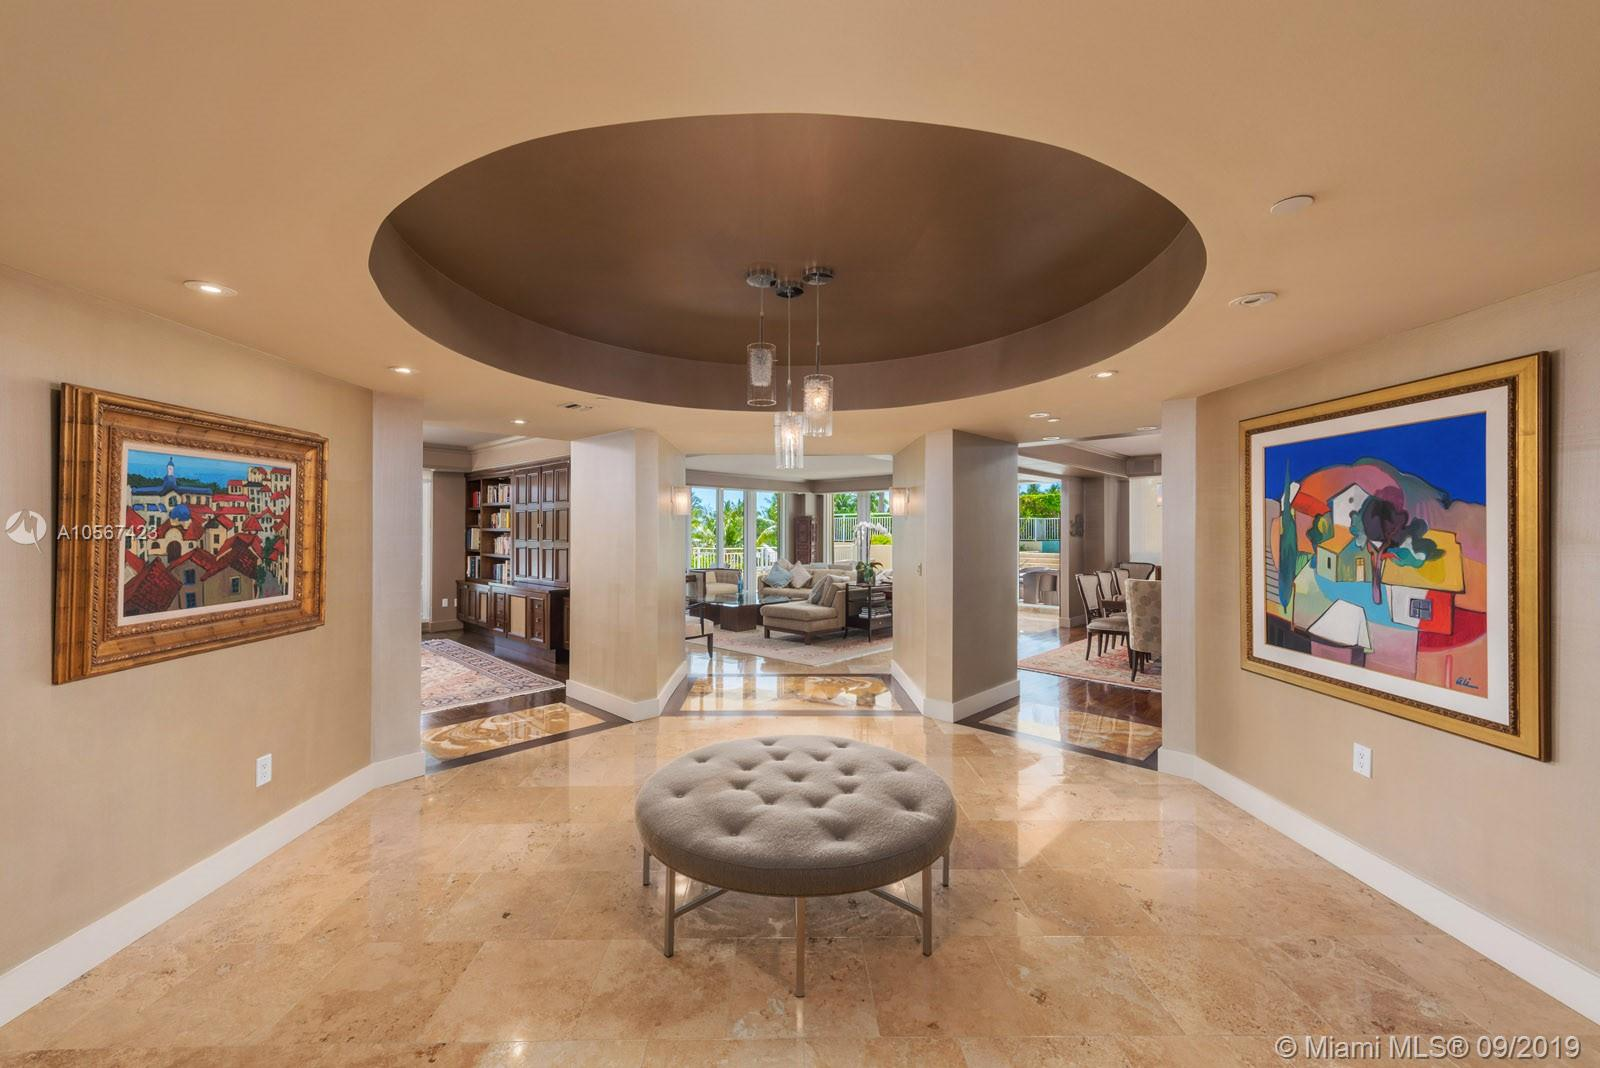 Unique! One Of Many Words That Beautifully Describes This 6, 701 Sq Ft, Multi-Level Apartment Which Feels Like A Waterfront Home. This Very Select Lanai Offers An Extremely Large Terrace Which Is Approx 3, 710 Sq Ft With Your Own Private Pool + Jucuzzi. Steps Away Lies The Gorgeous Sandy Beach Of Florida+Ógé¼Gäós East Coast. Top Of The Line Finishes Beside An Array Of 8 Bedrooms, 8 Full Bathrooms +2 Powder Rooms Set This Gem Of A Residence On Its Own Tier Of Luxury And Distinctiveness (Main Unit Has 5 Bedrooms And Guest House Has 3 Bedrooms). 2 Car Private Garage + 2 Additional Parking Spaces.